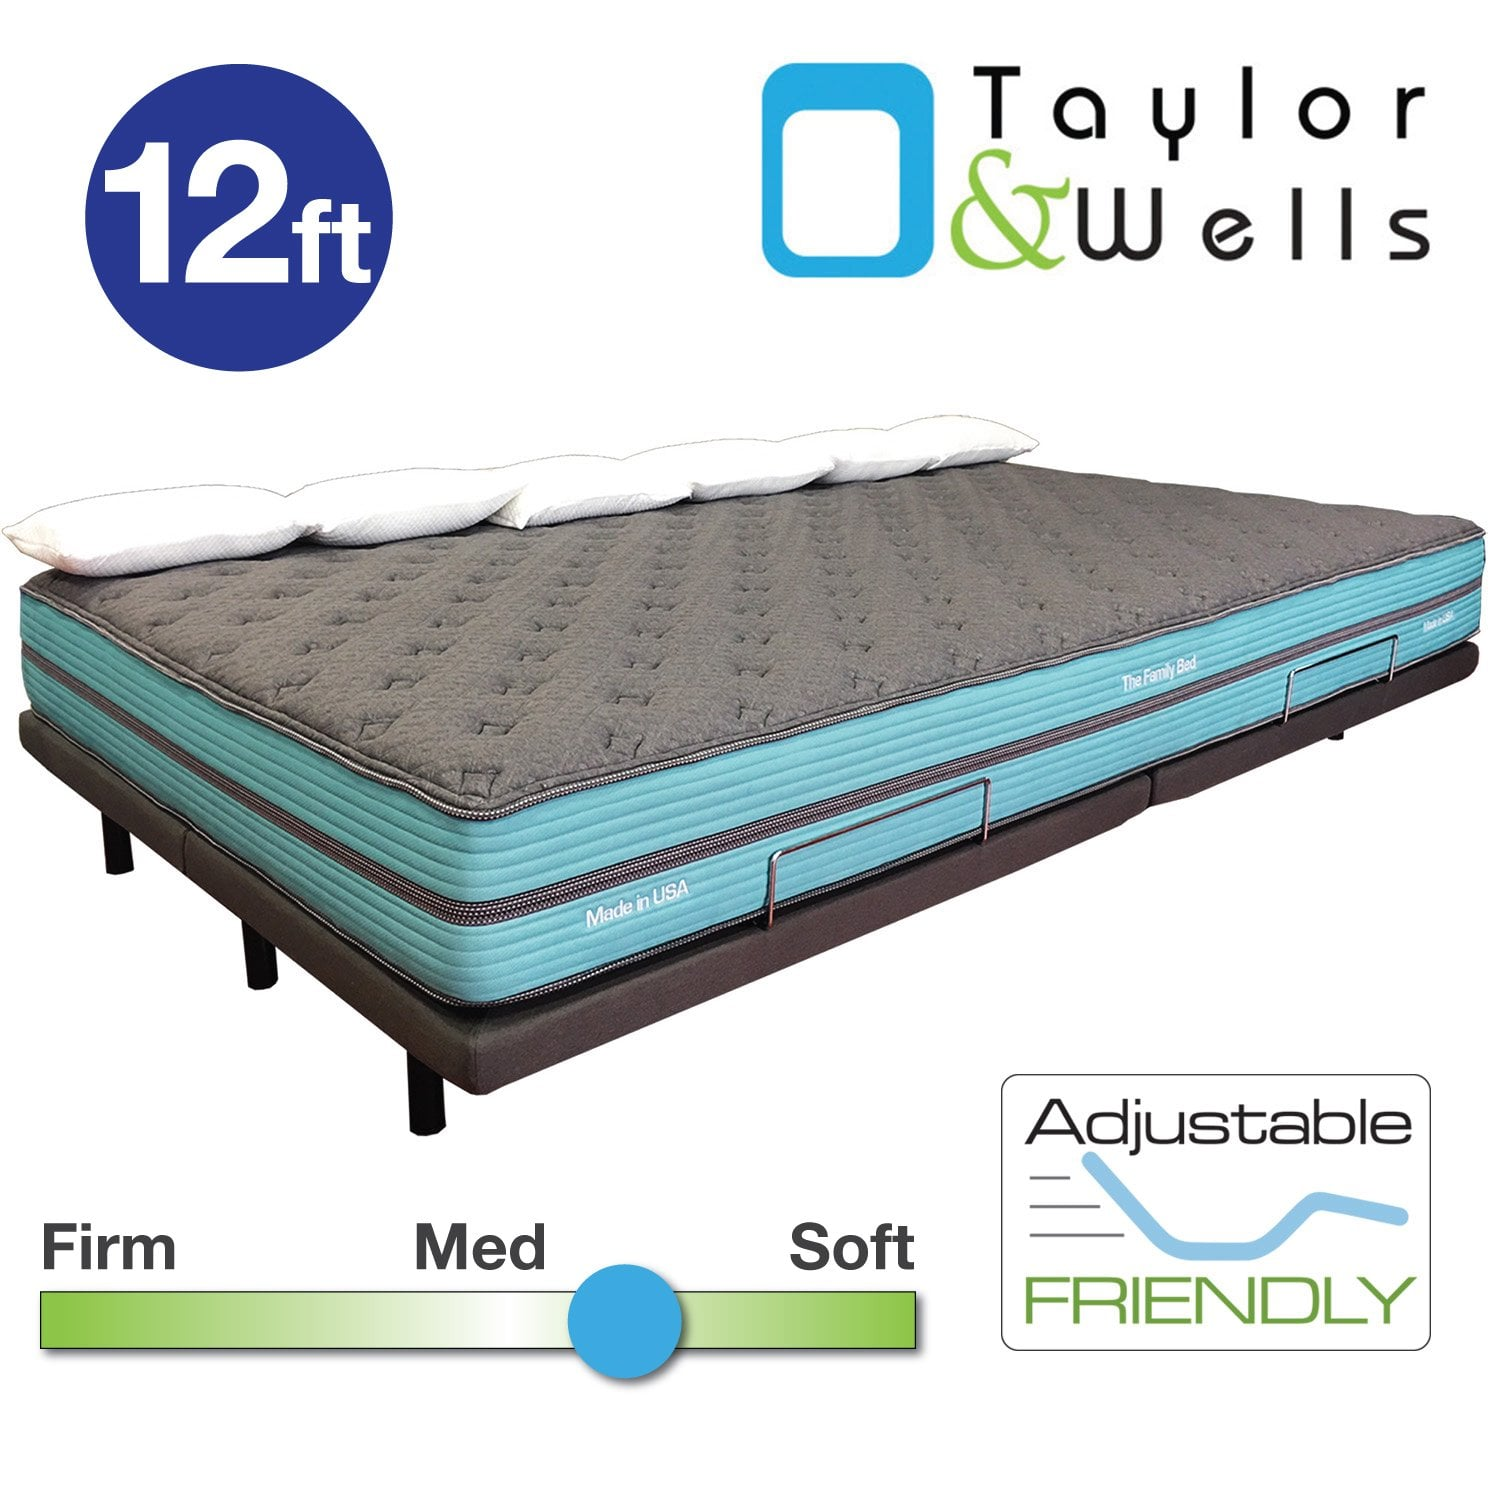 Taylor Wells Family Bed For Cosleeping Popsugar Family